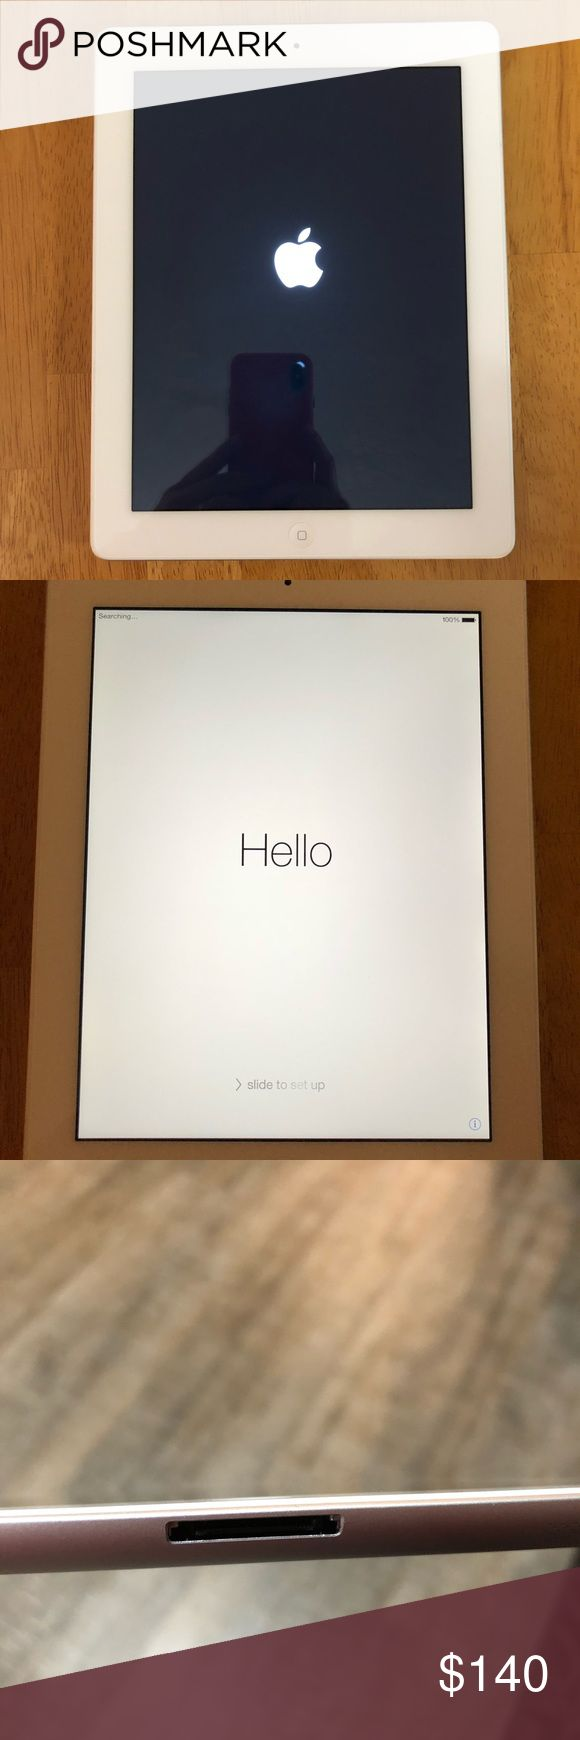 iPad 16GB, AT&T & WiFi In excellent used condition this iPad is ready for a new home. Model A1430. Completely wiped and iCloud account removed. Will come with charger and long charge cable. There is what I believe to be a tempered glass screen protector on the screen. It will be in a case for shipping though I consider the case to be in poor condition and would not use it myself. Other